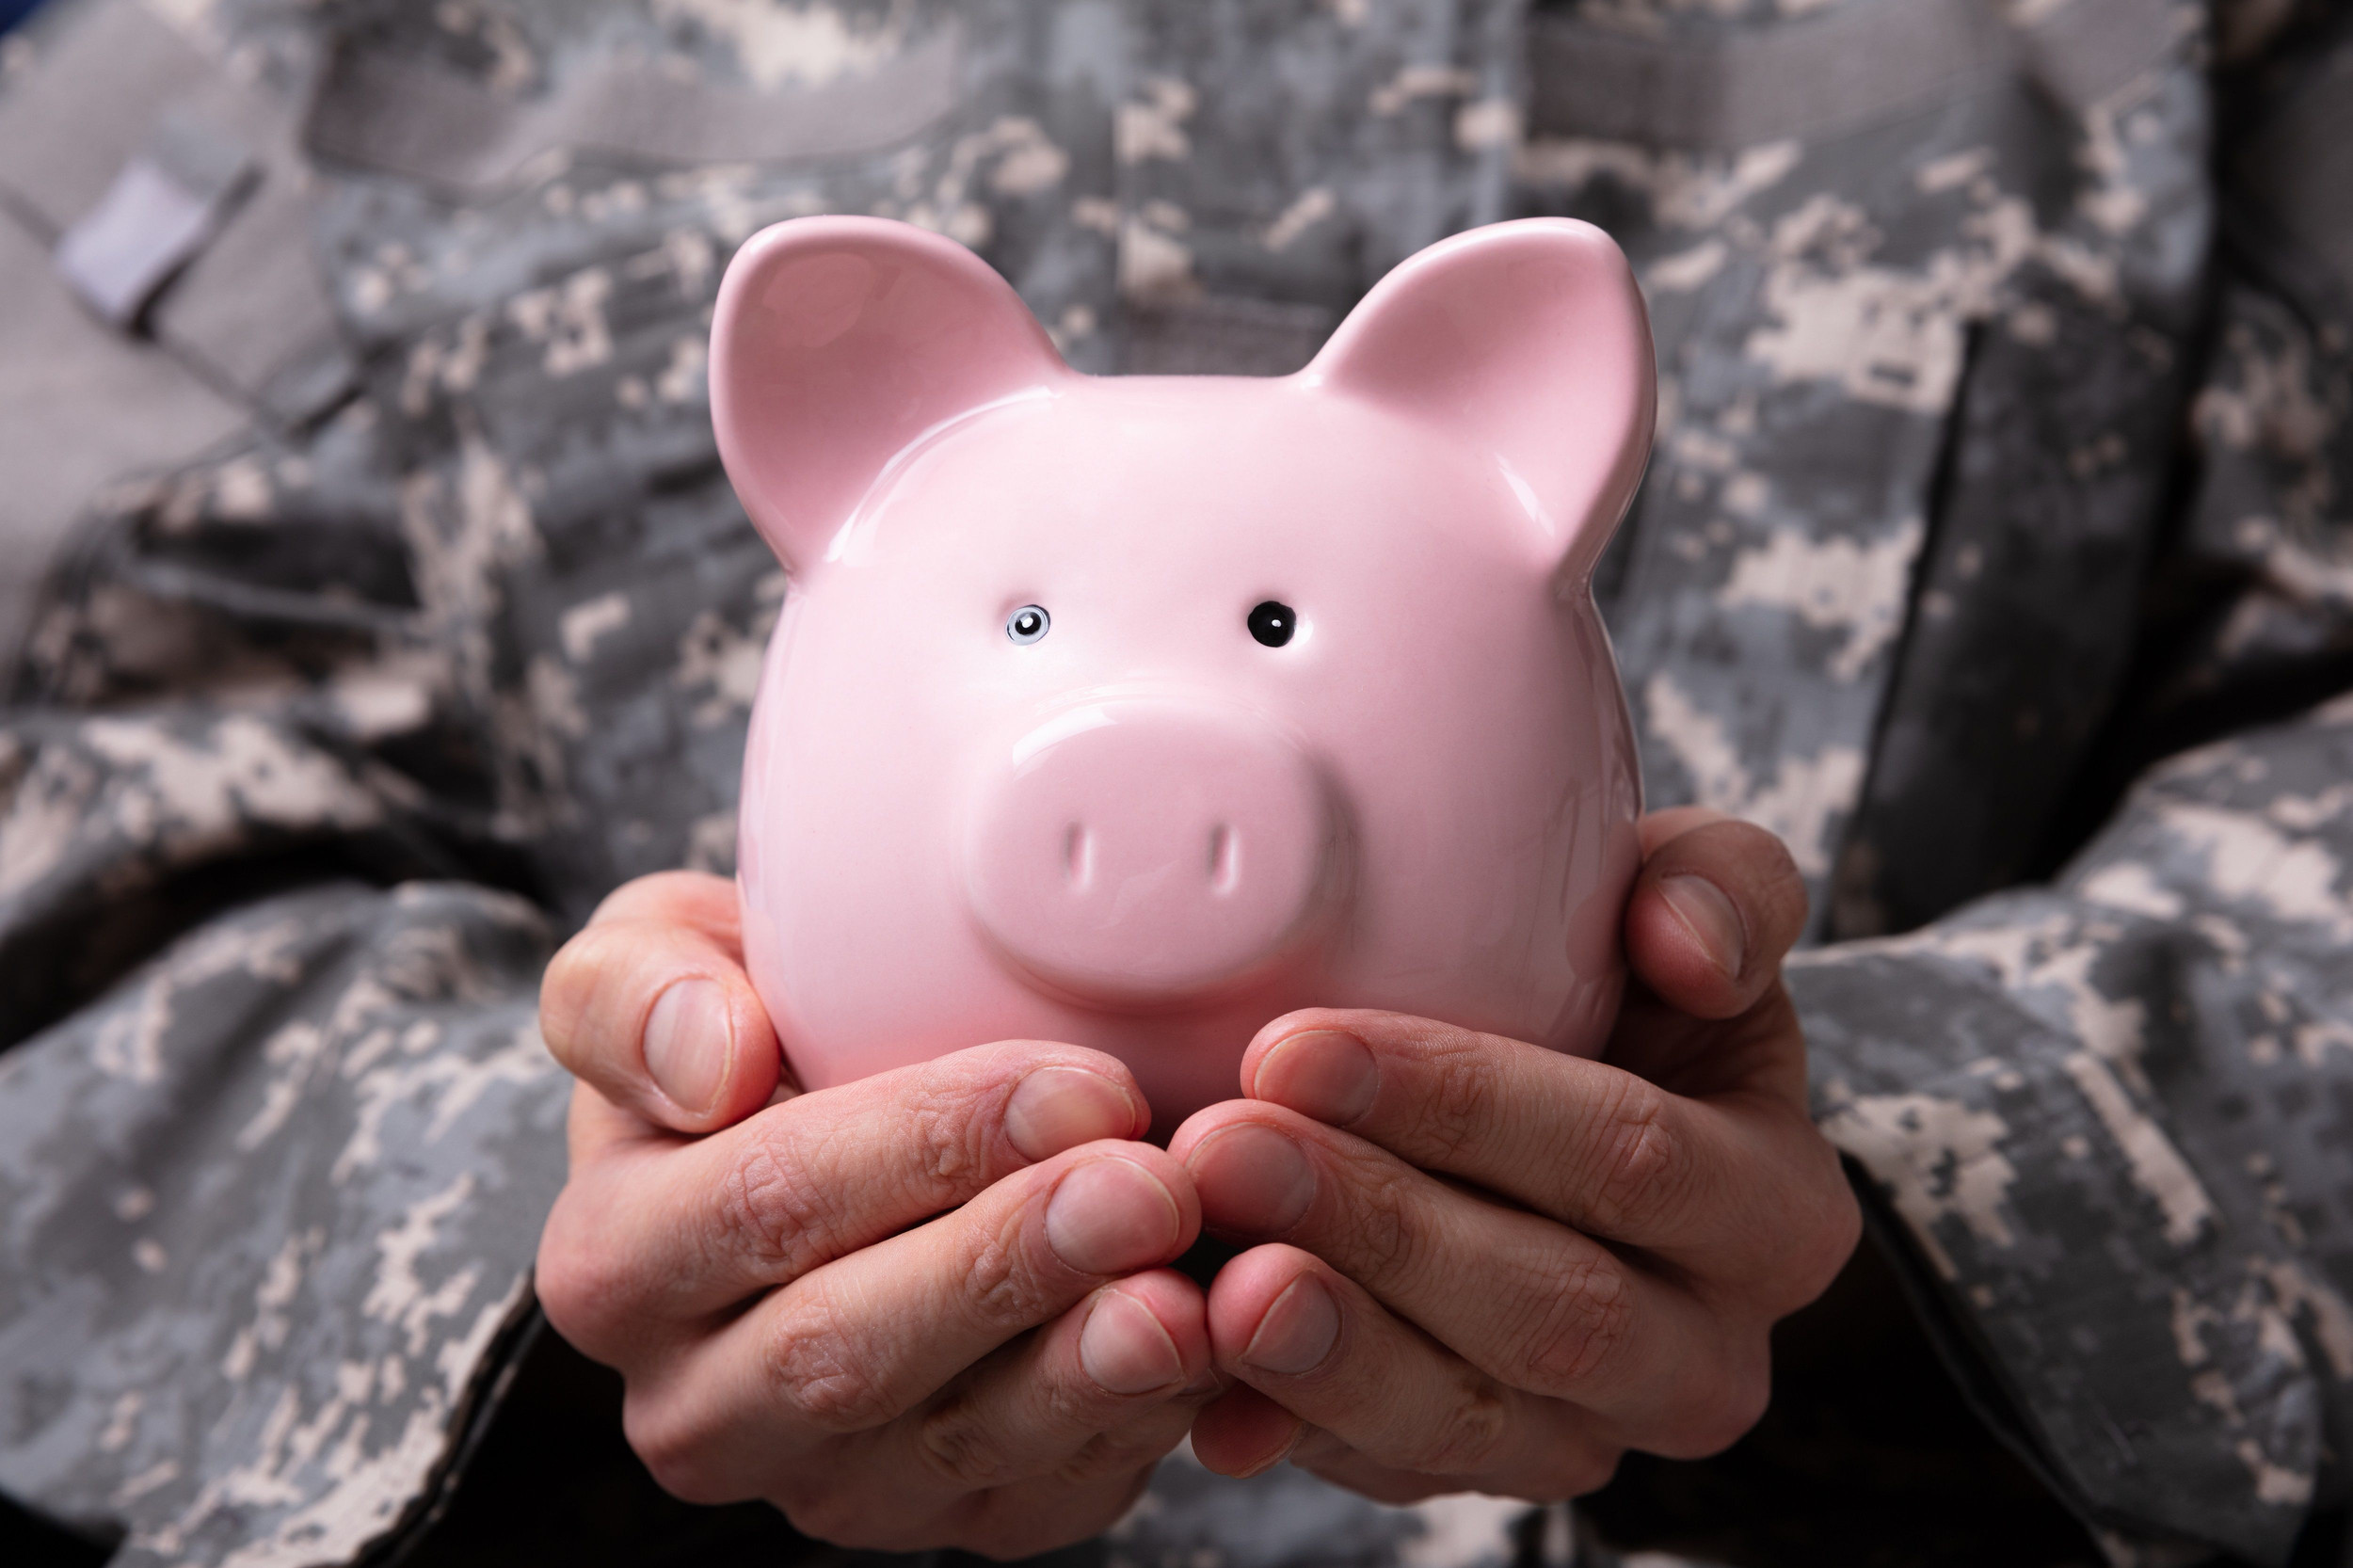 GAO: Some troops struggle with financial literacy when it comes to retirement benefits